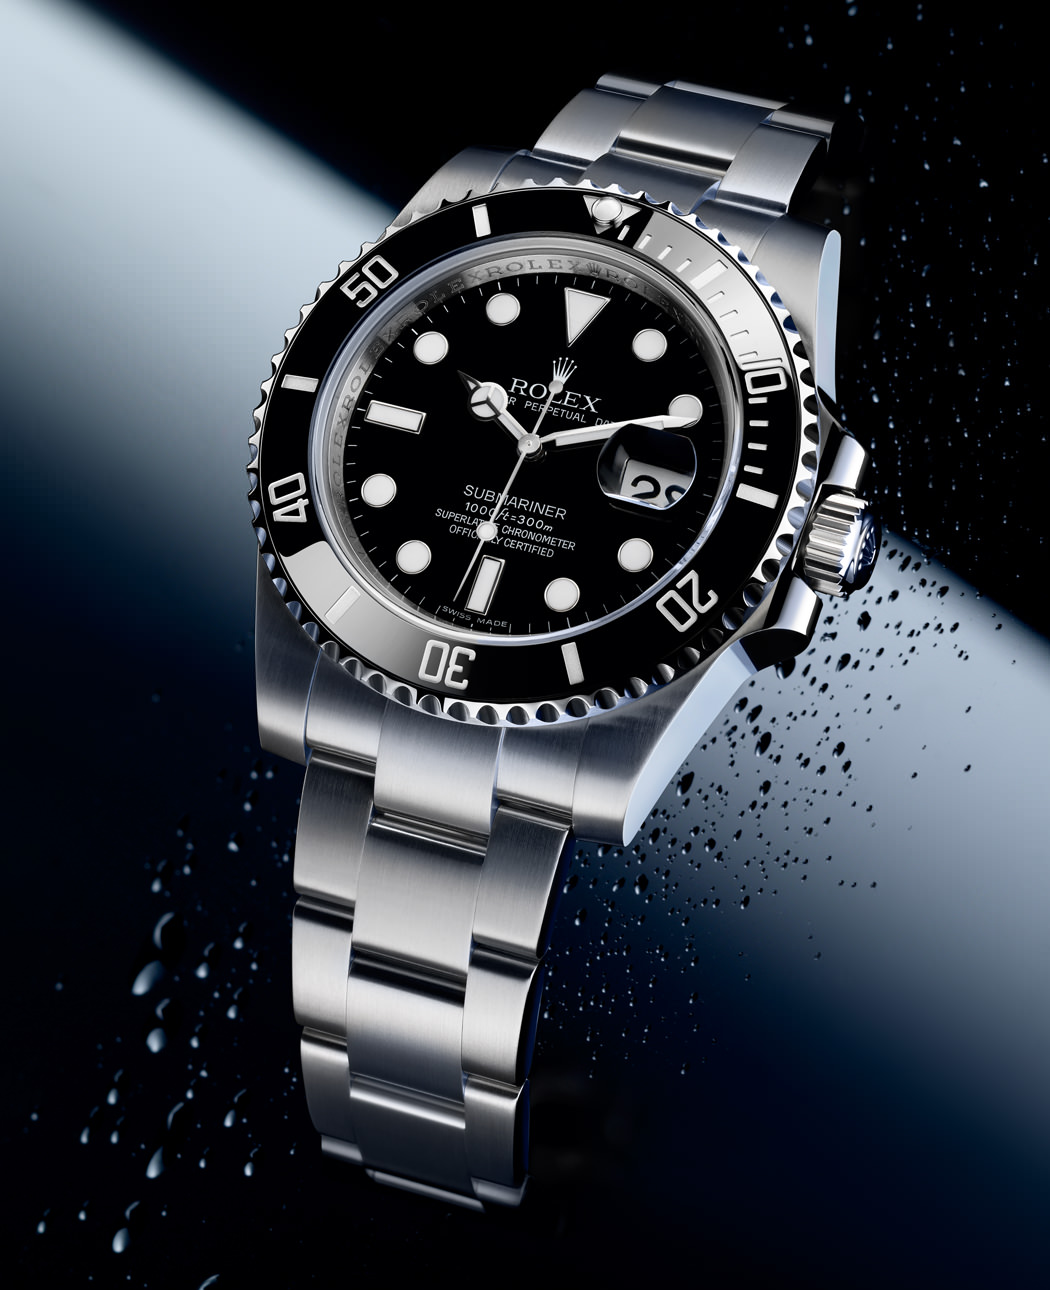 OYSTER PERPETUAL SUBMARINER DATE de Rolex